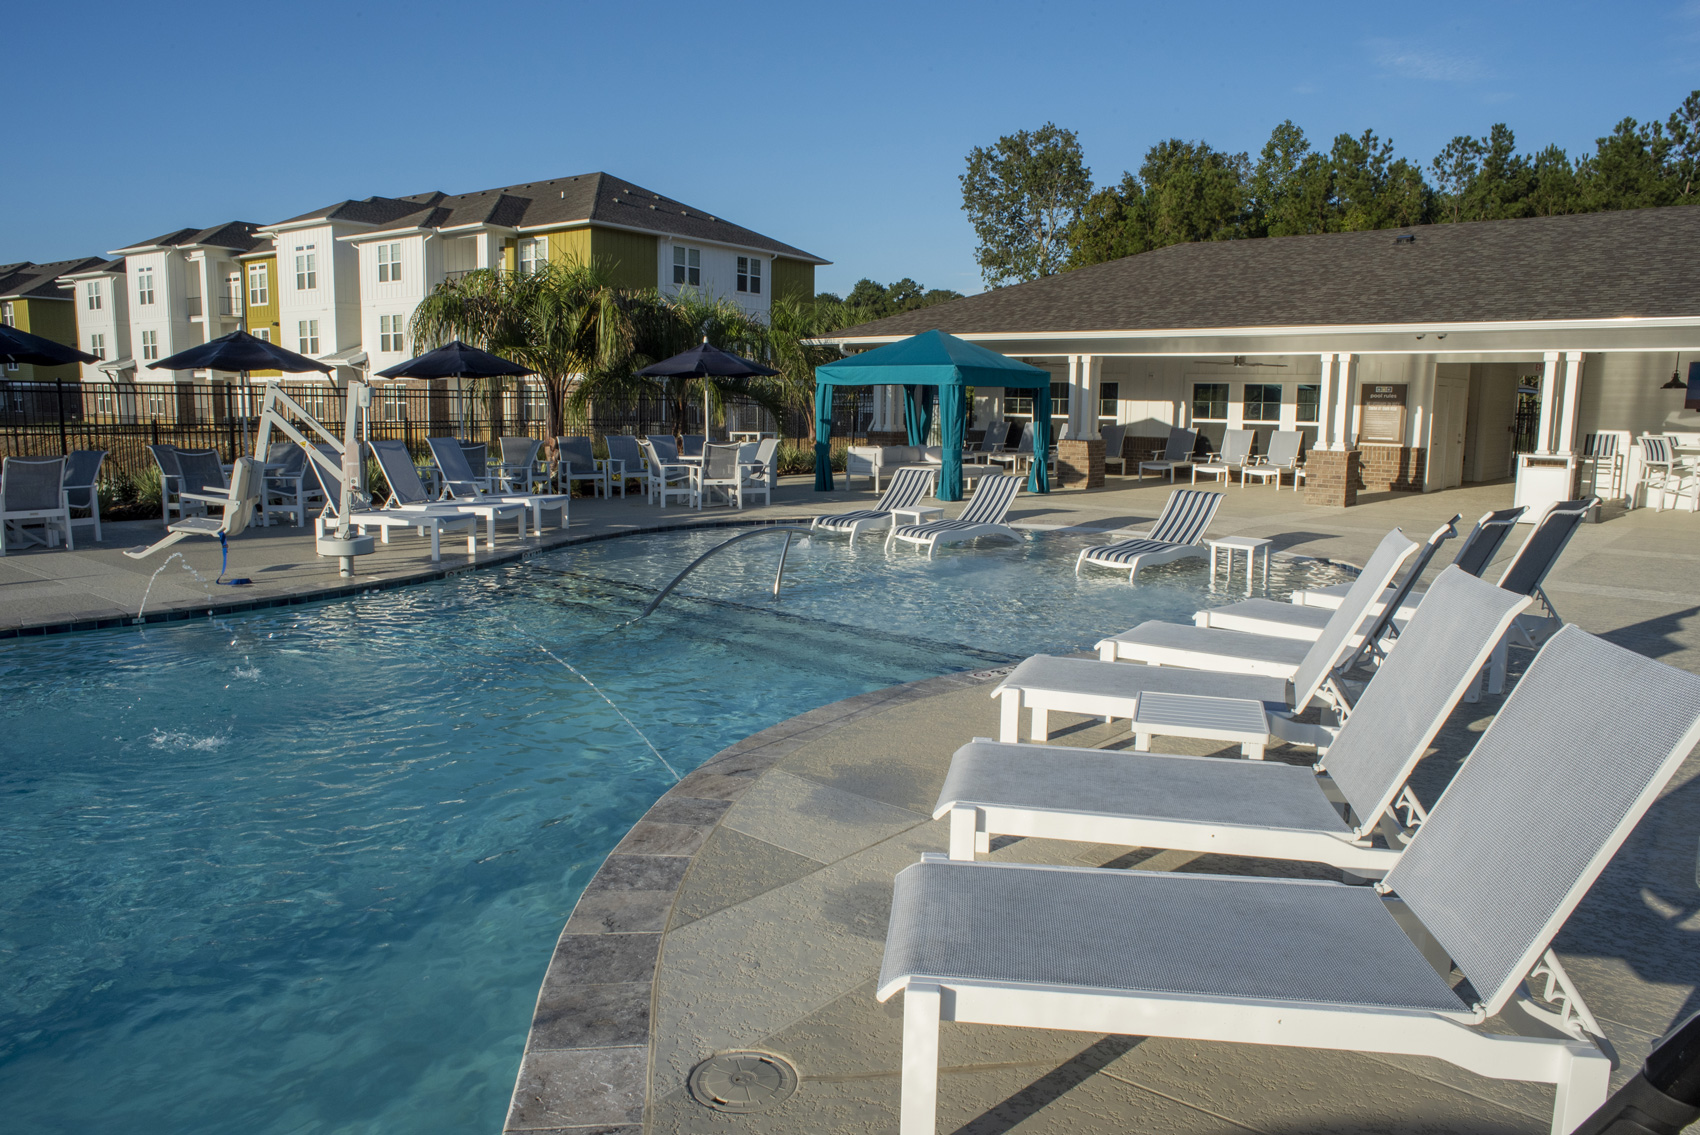 Poolside Lounge Furniture at The Palms at Juban Lakes Apartments in Denham Springs, Louisiana